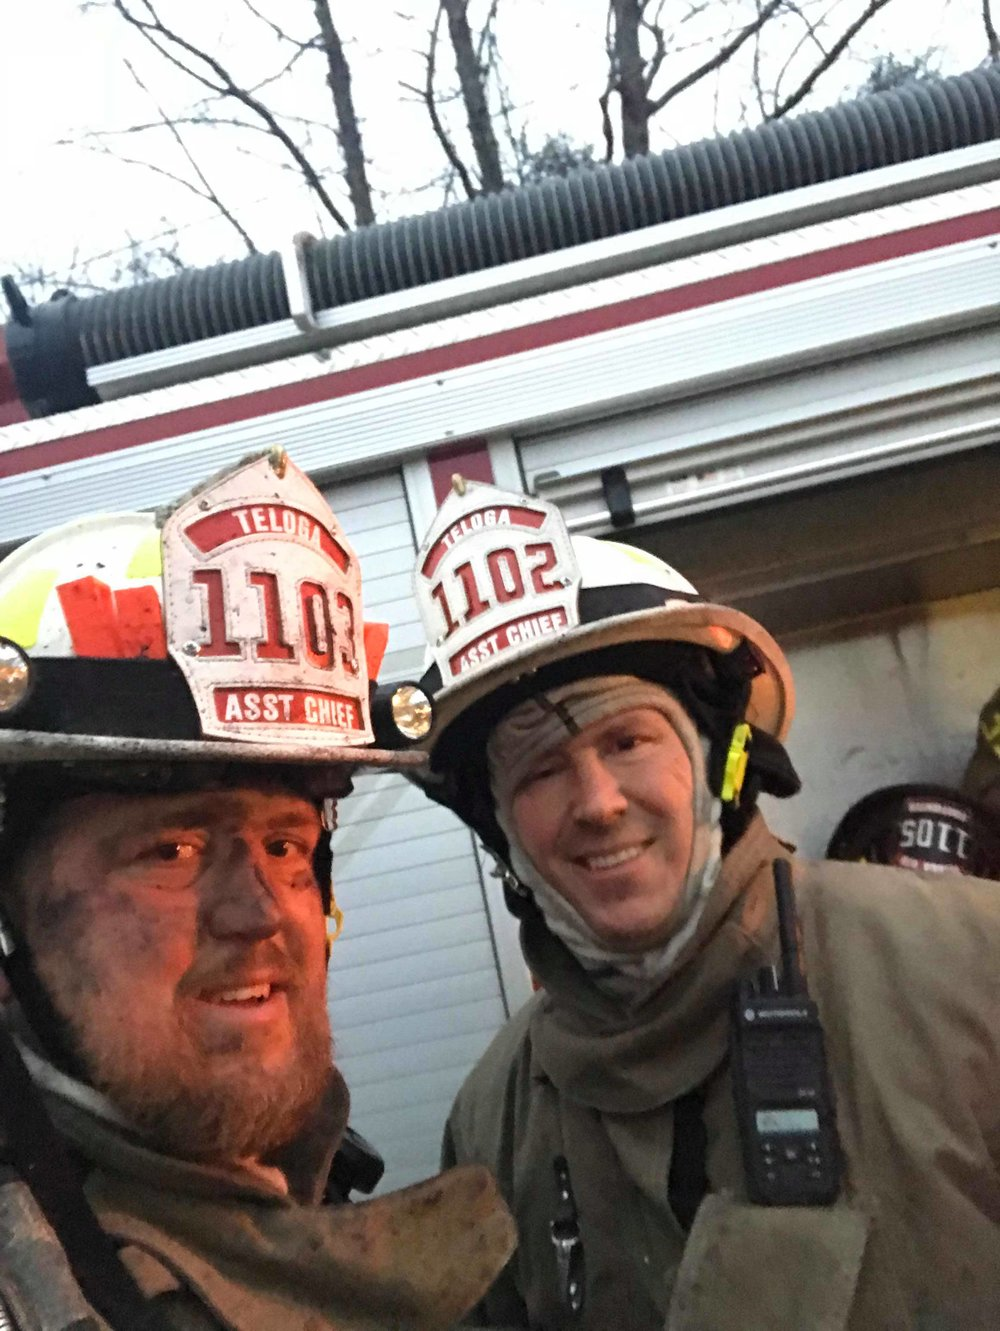 Andy (left) while on firefighter duties